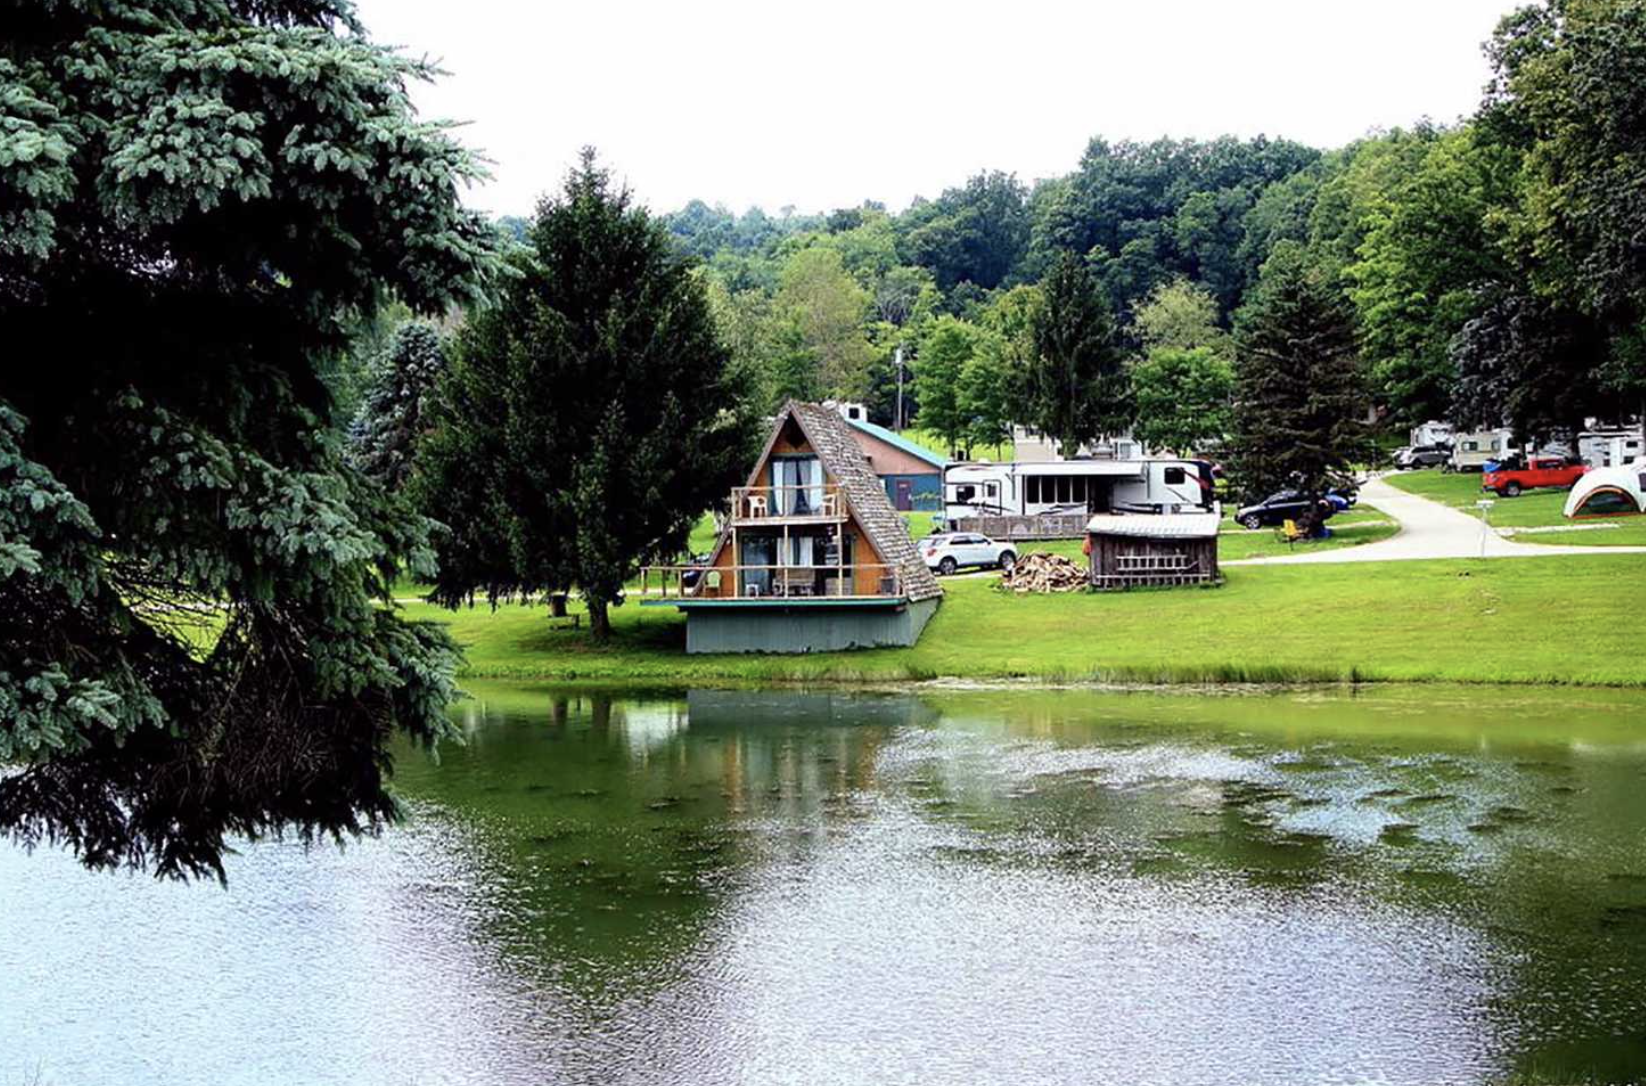 Cabin on the lake with RVs in the background